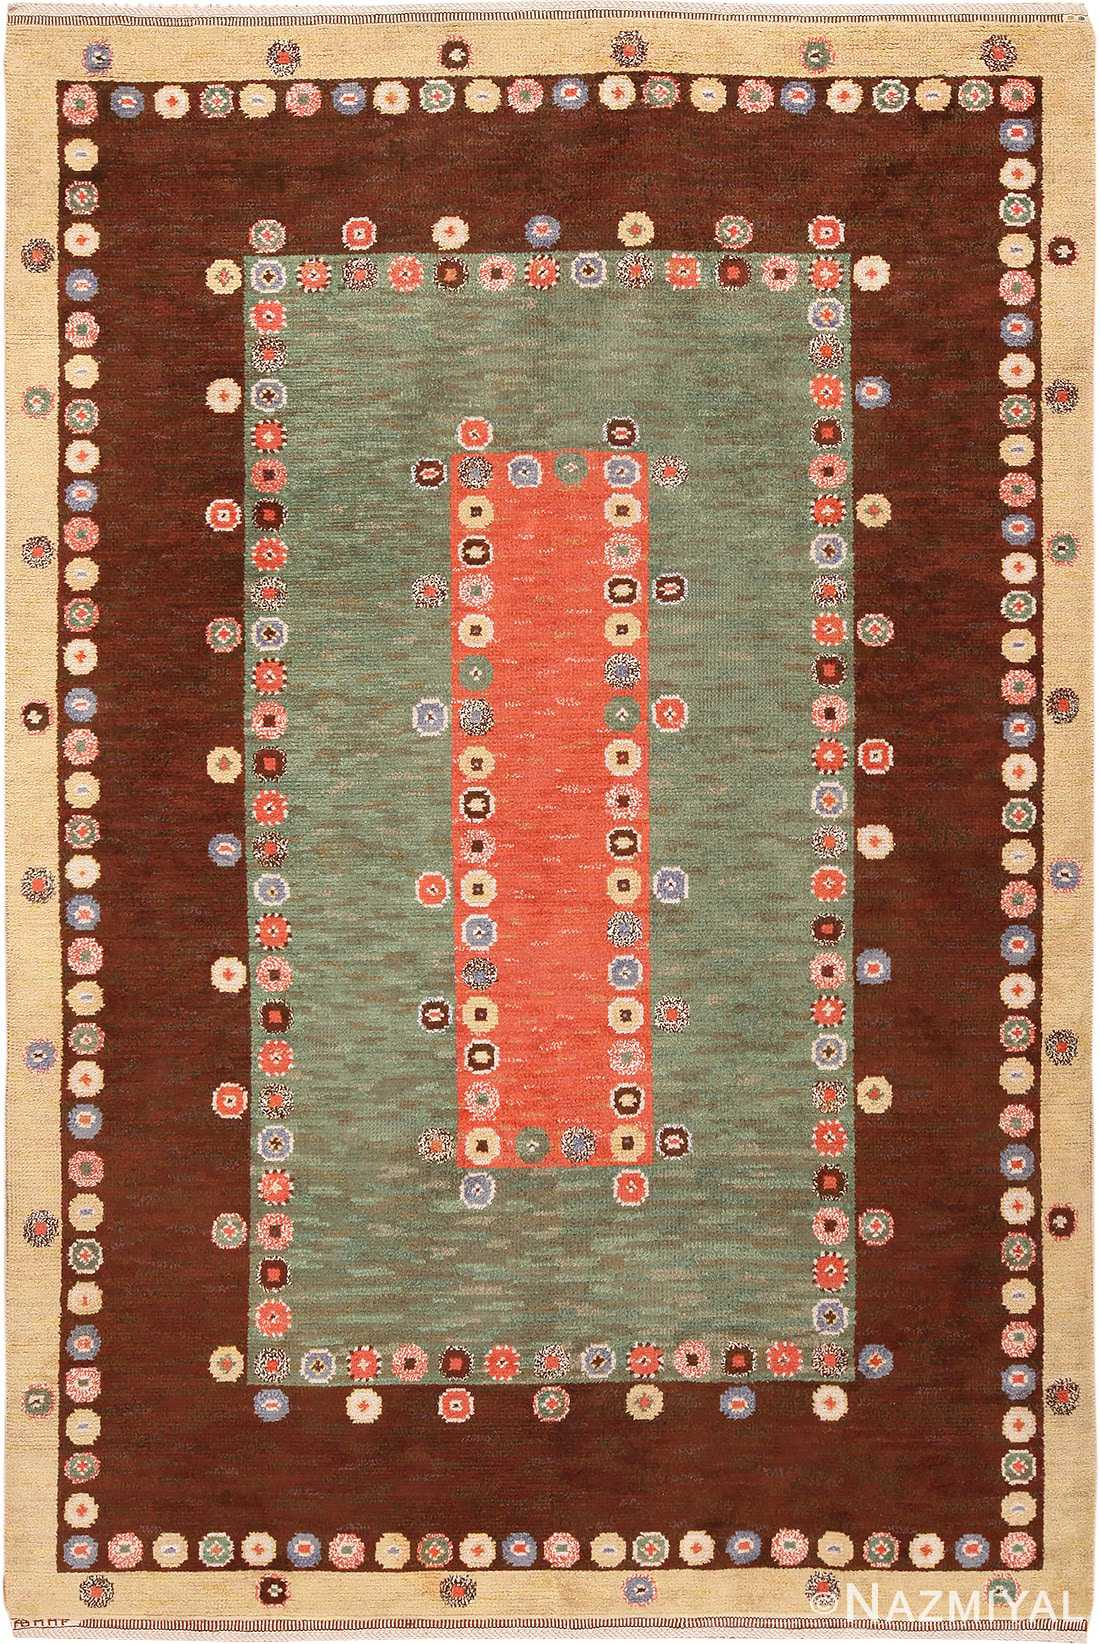 Vintage Scandinavian Marta Maas Fjetterstrom Carpet #70024 from Nazmiyal Antique Rugs in NYC